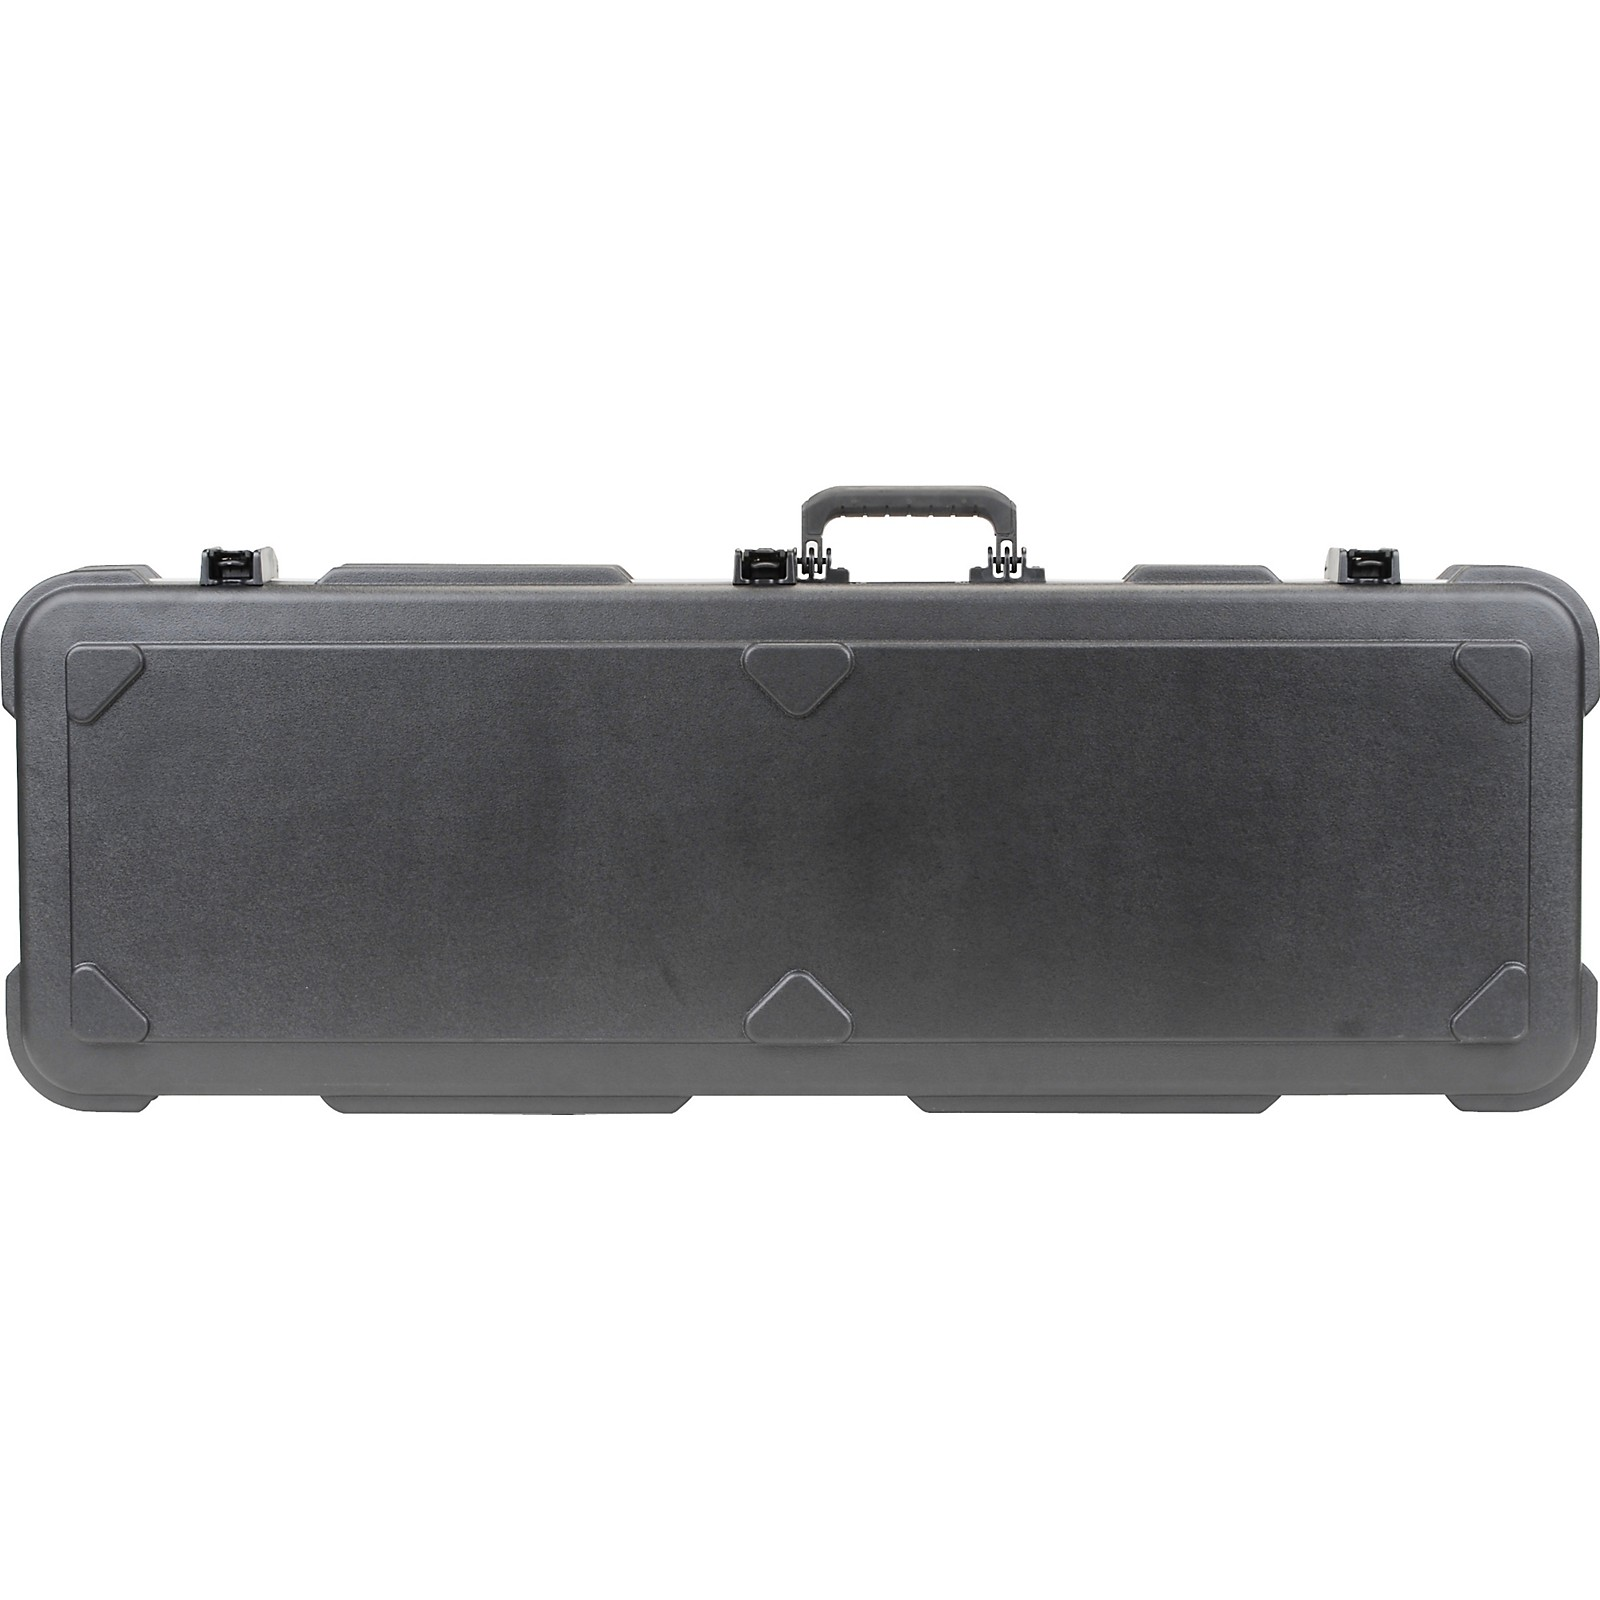 SKB SKB-44 Deluxe Universal Electric Bass Guitar Case